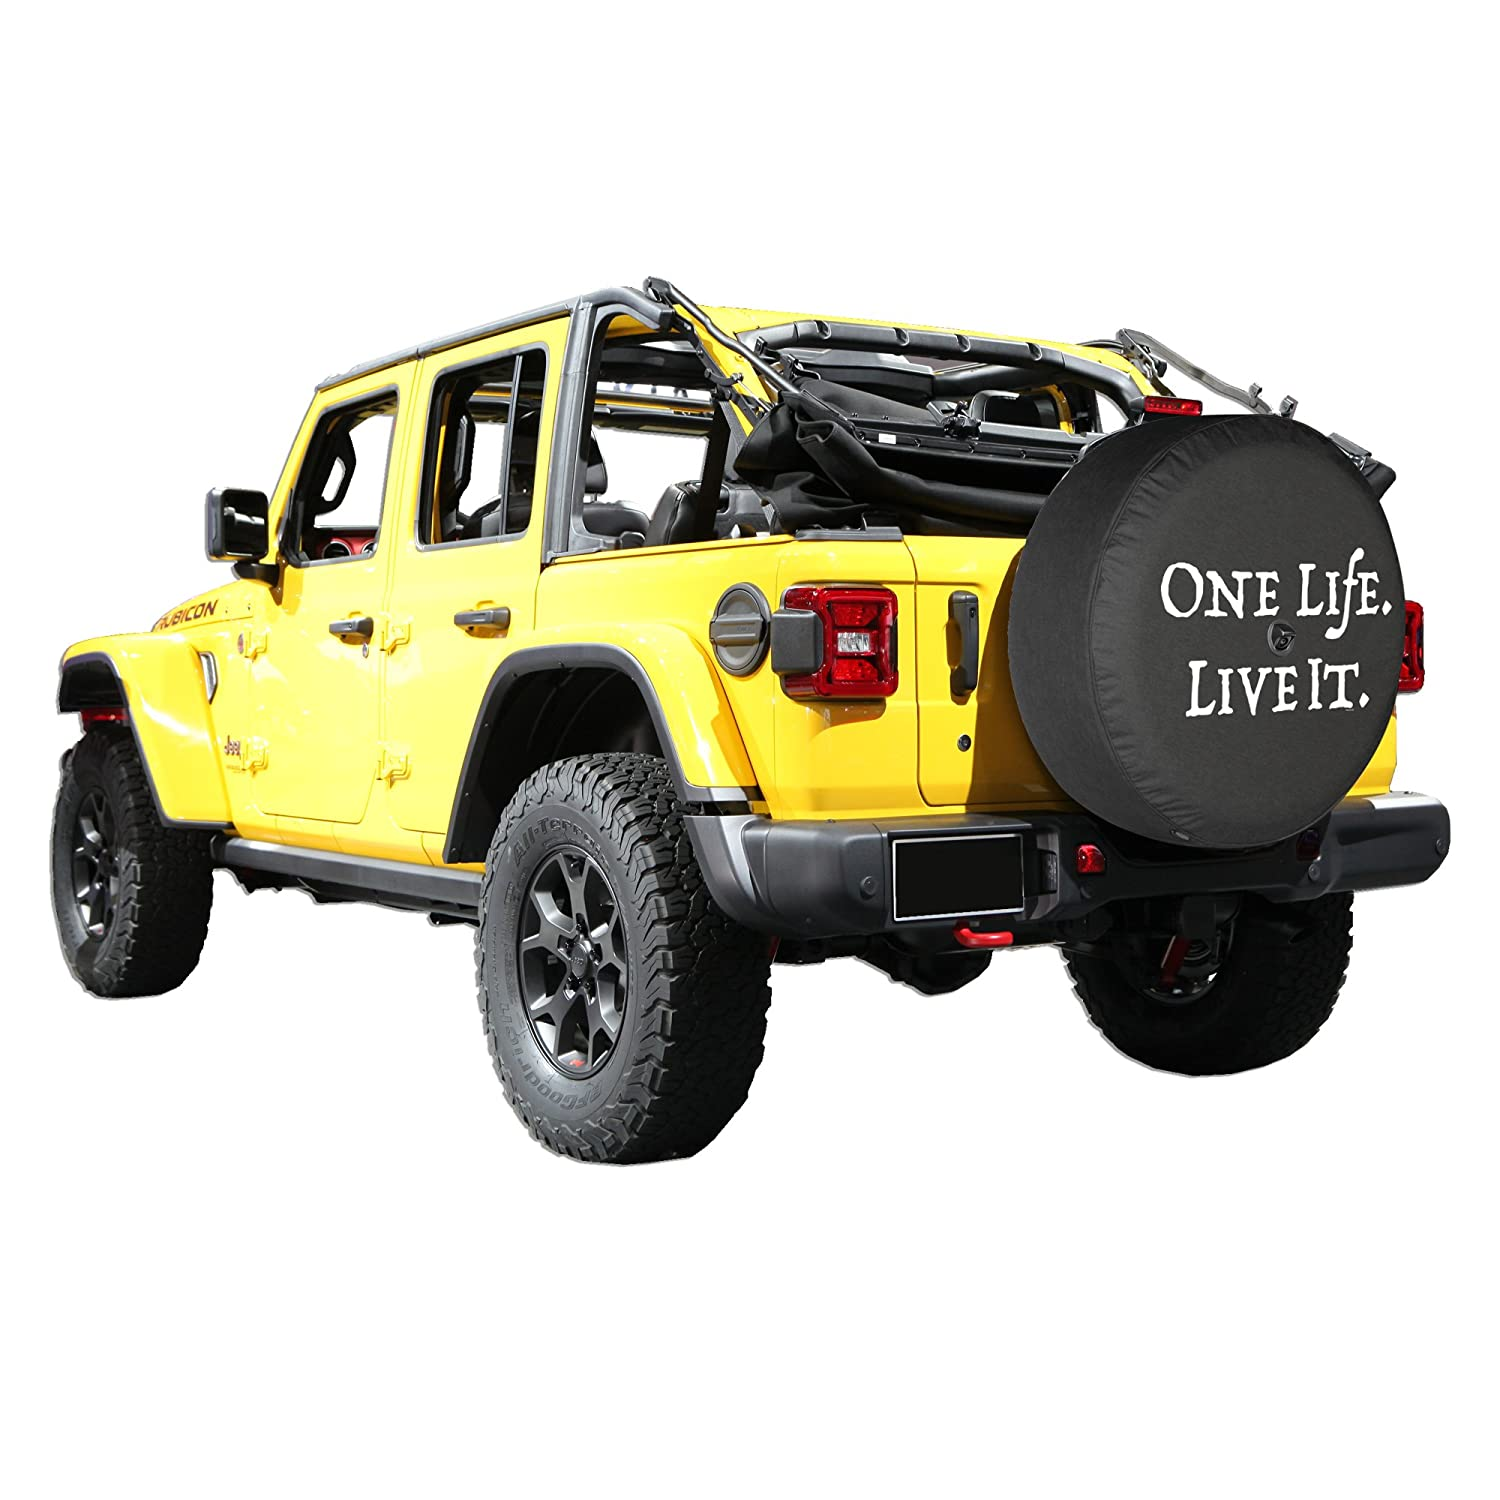 - One Life Live It Boomerang 33 Soft JL Tire Cover for use with 2018-2019 Jeep Wrangler Rubicon JL with Back-up Camera